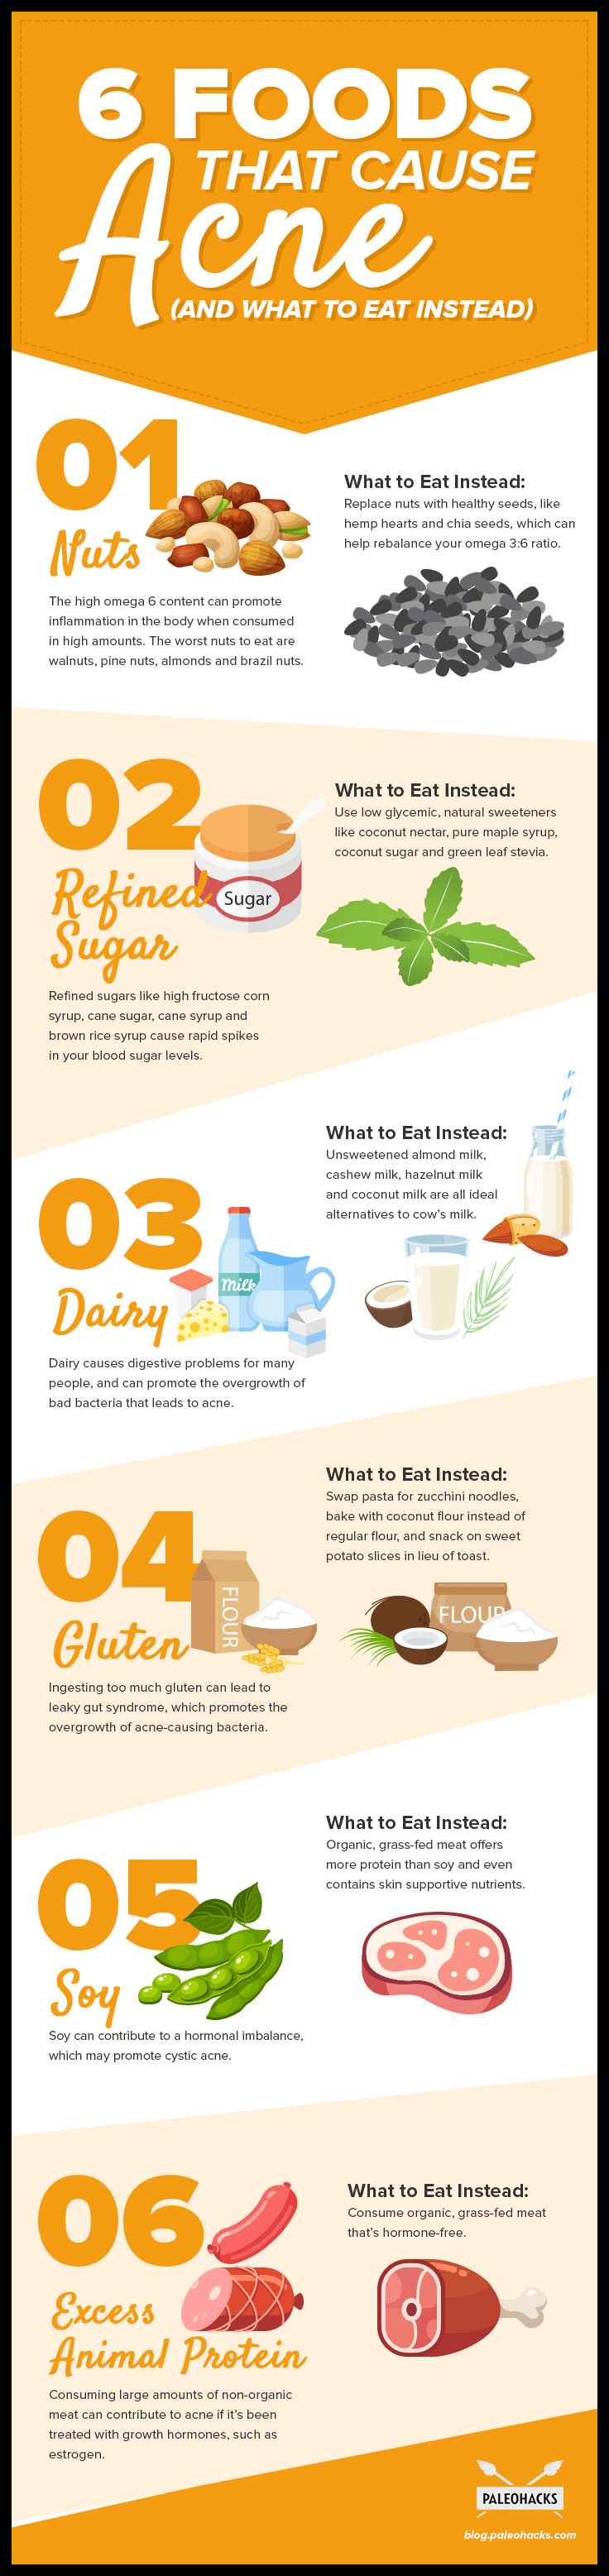 6-Foods-That-Cause-Acne-infog.png